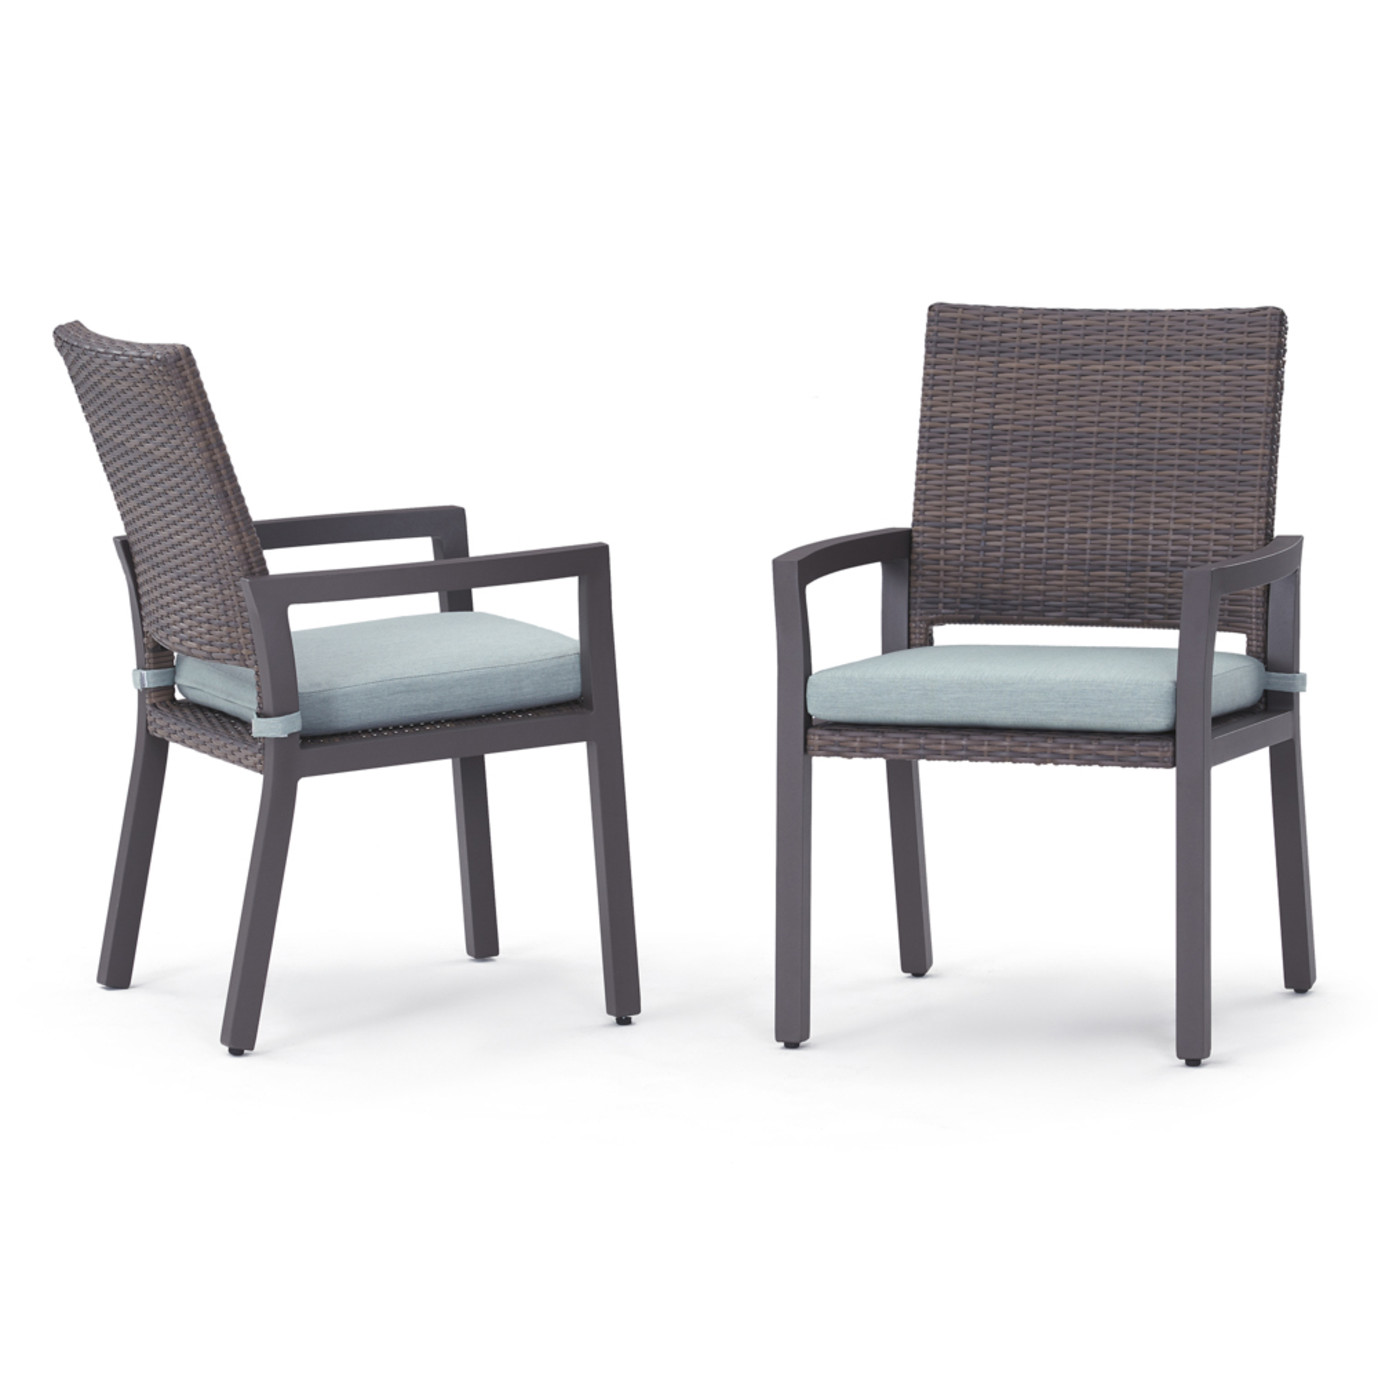 Milea 8pc Dining Chairs - Mist Blue